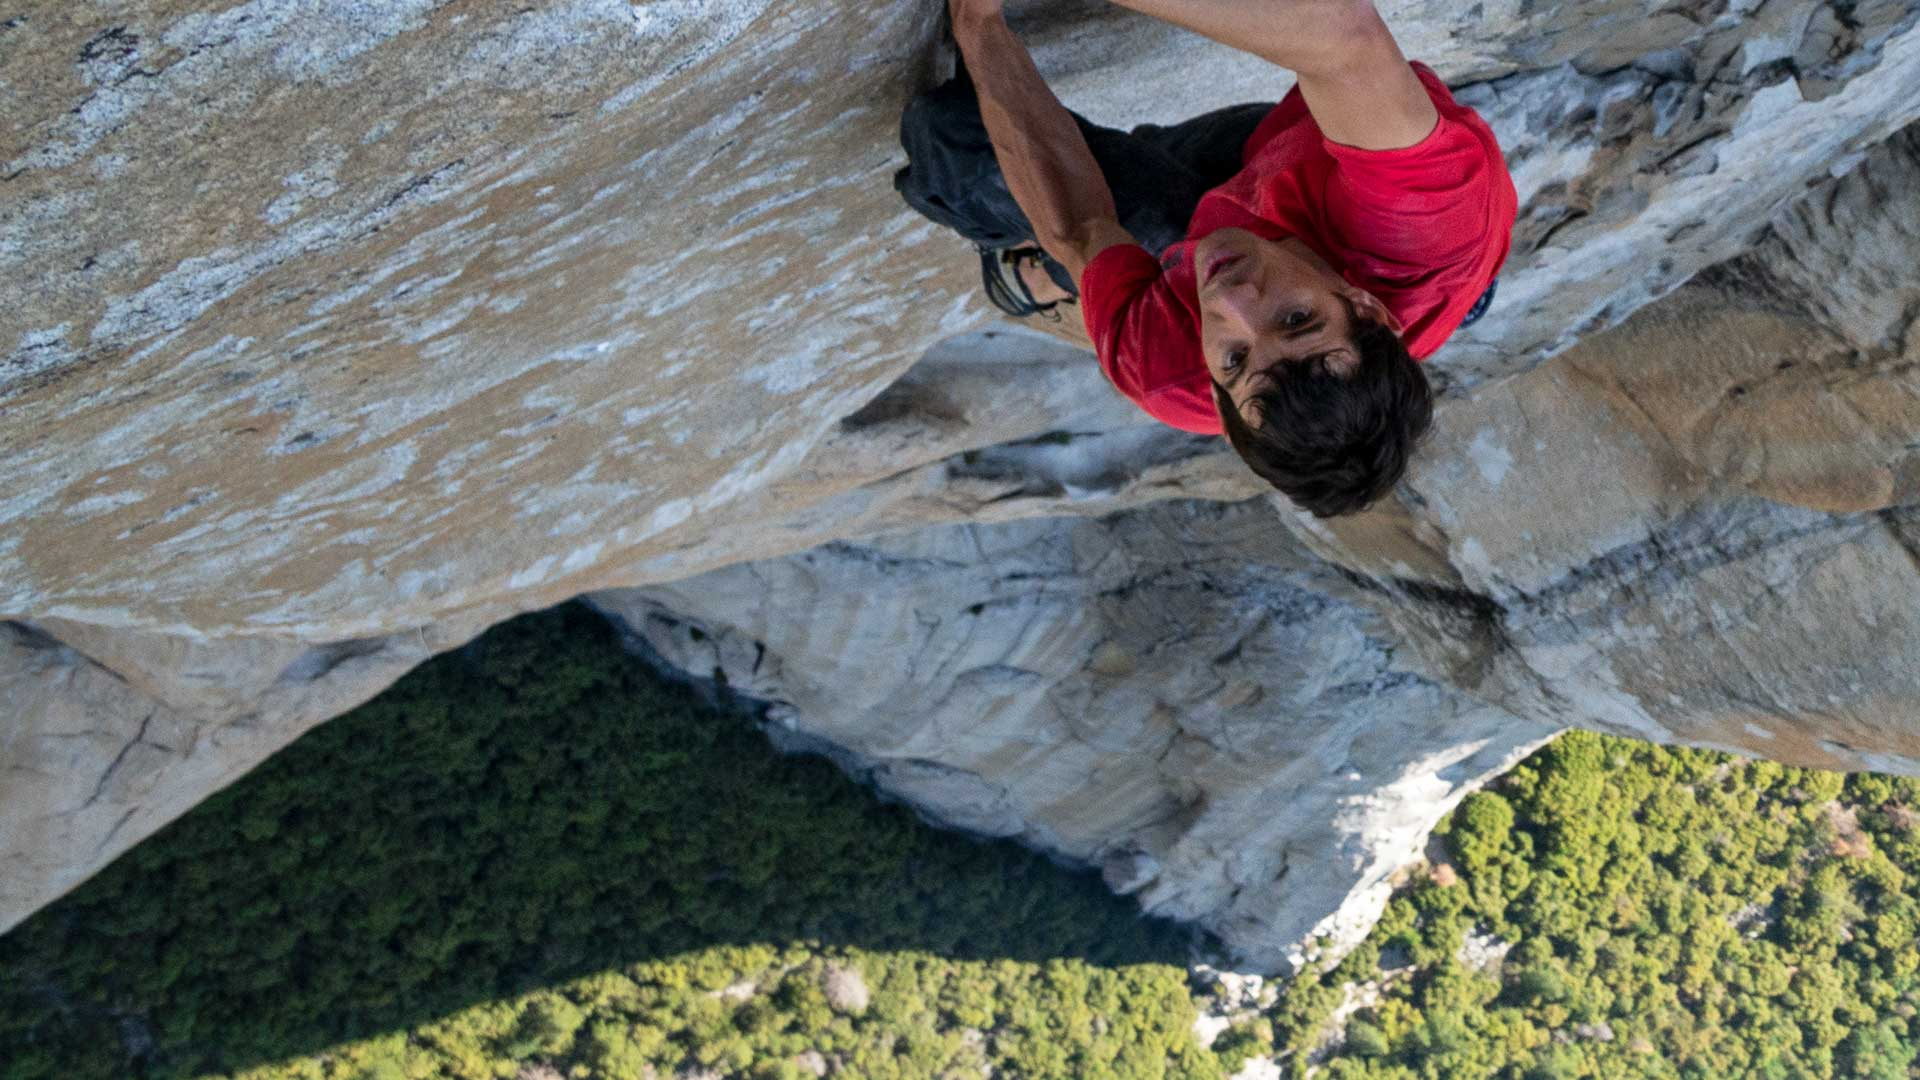 Free Solo (2018) – Filmy o wspinaczce